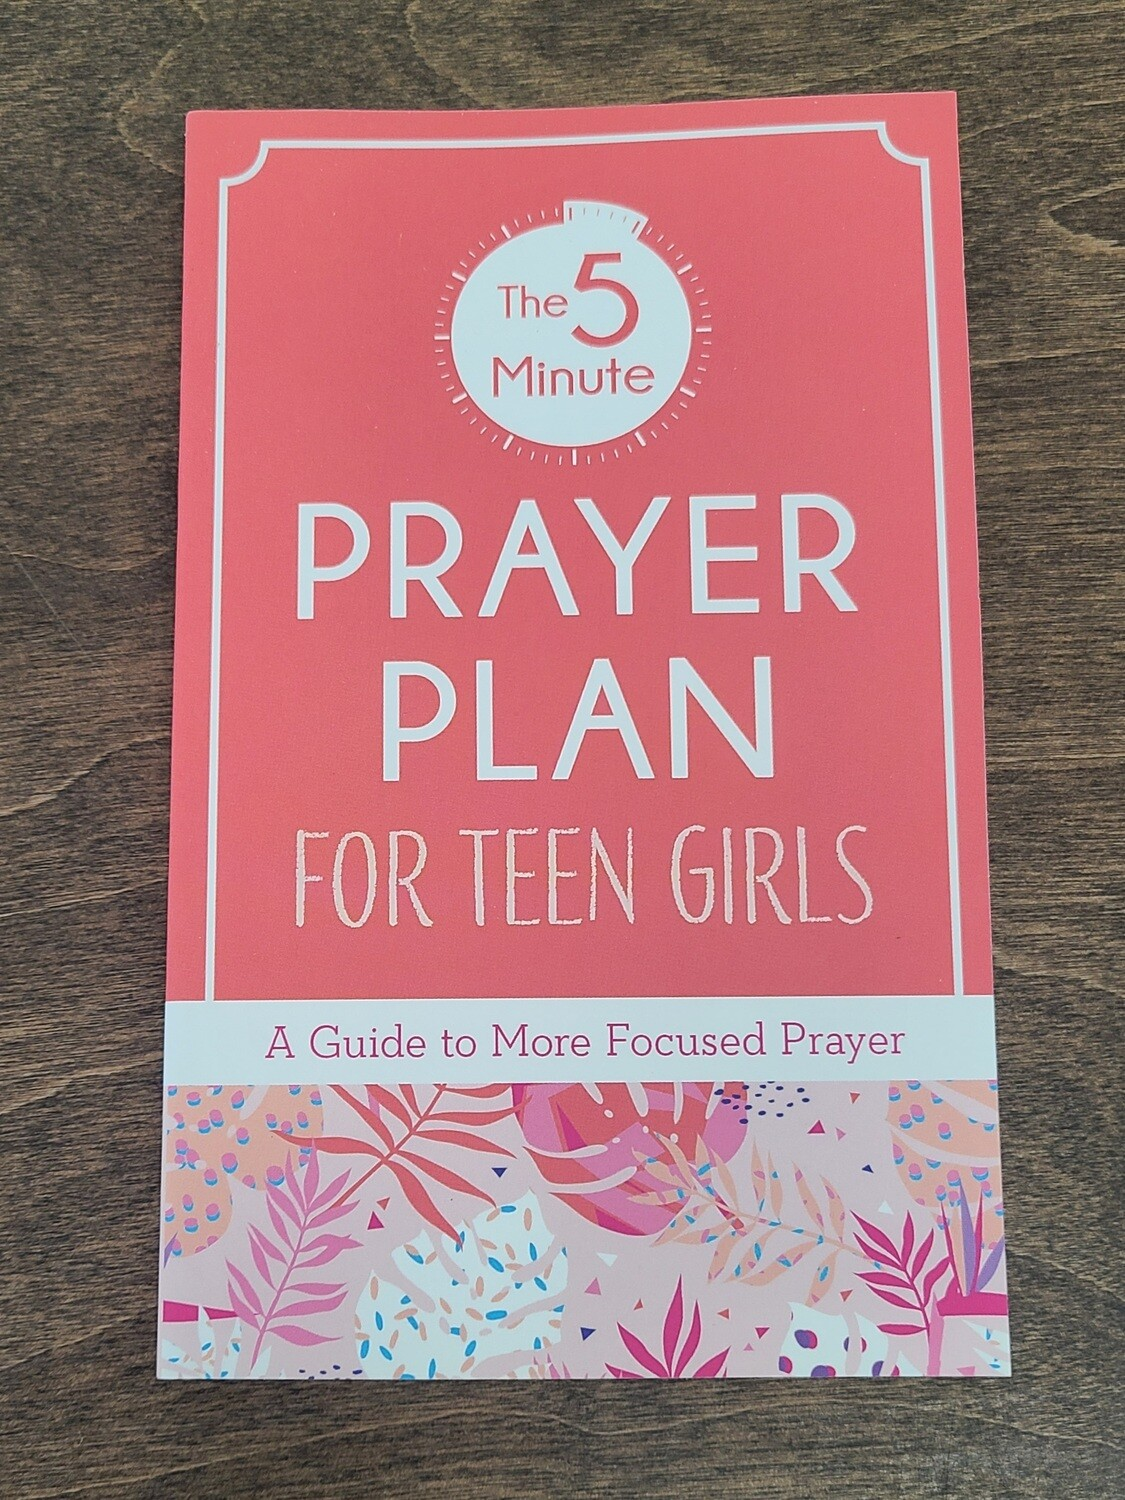 The 5-Minute Prayer Plan for Teen Girls by MariLee Parrish